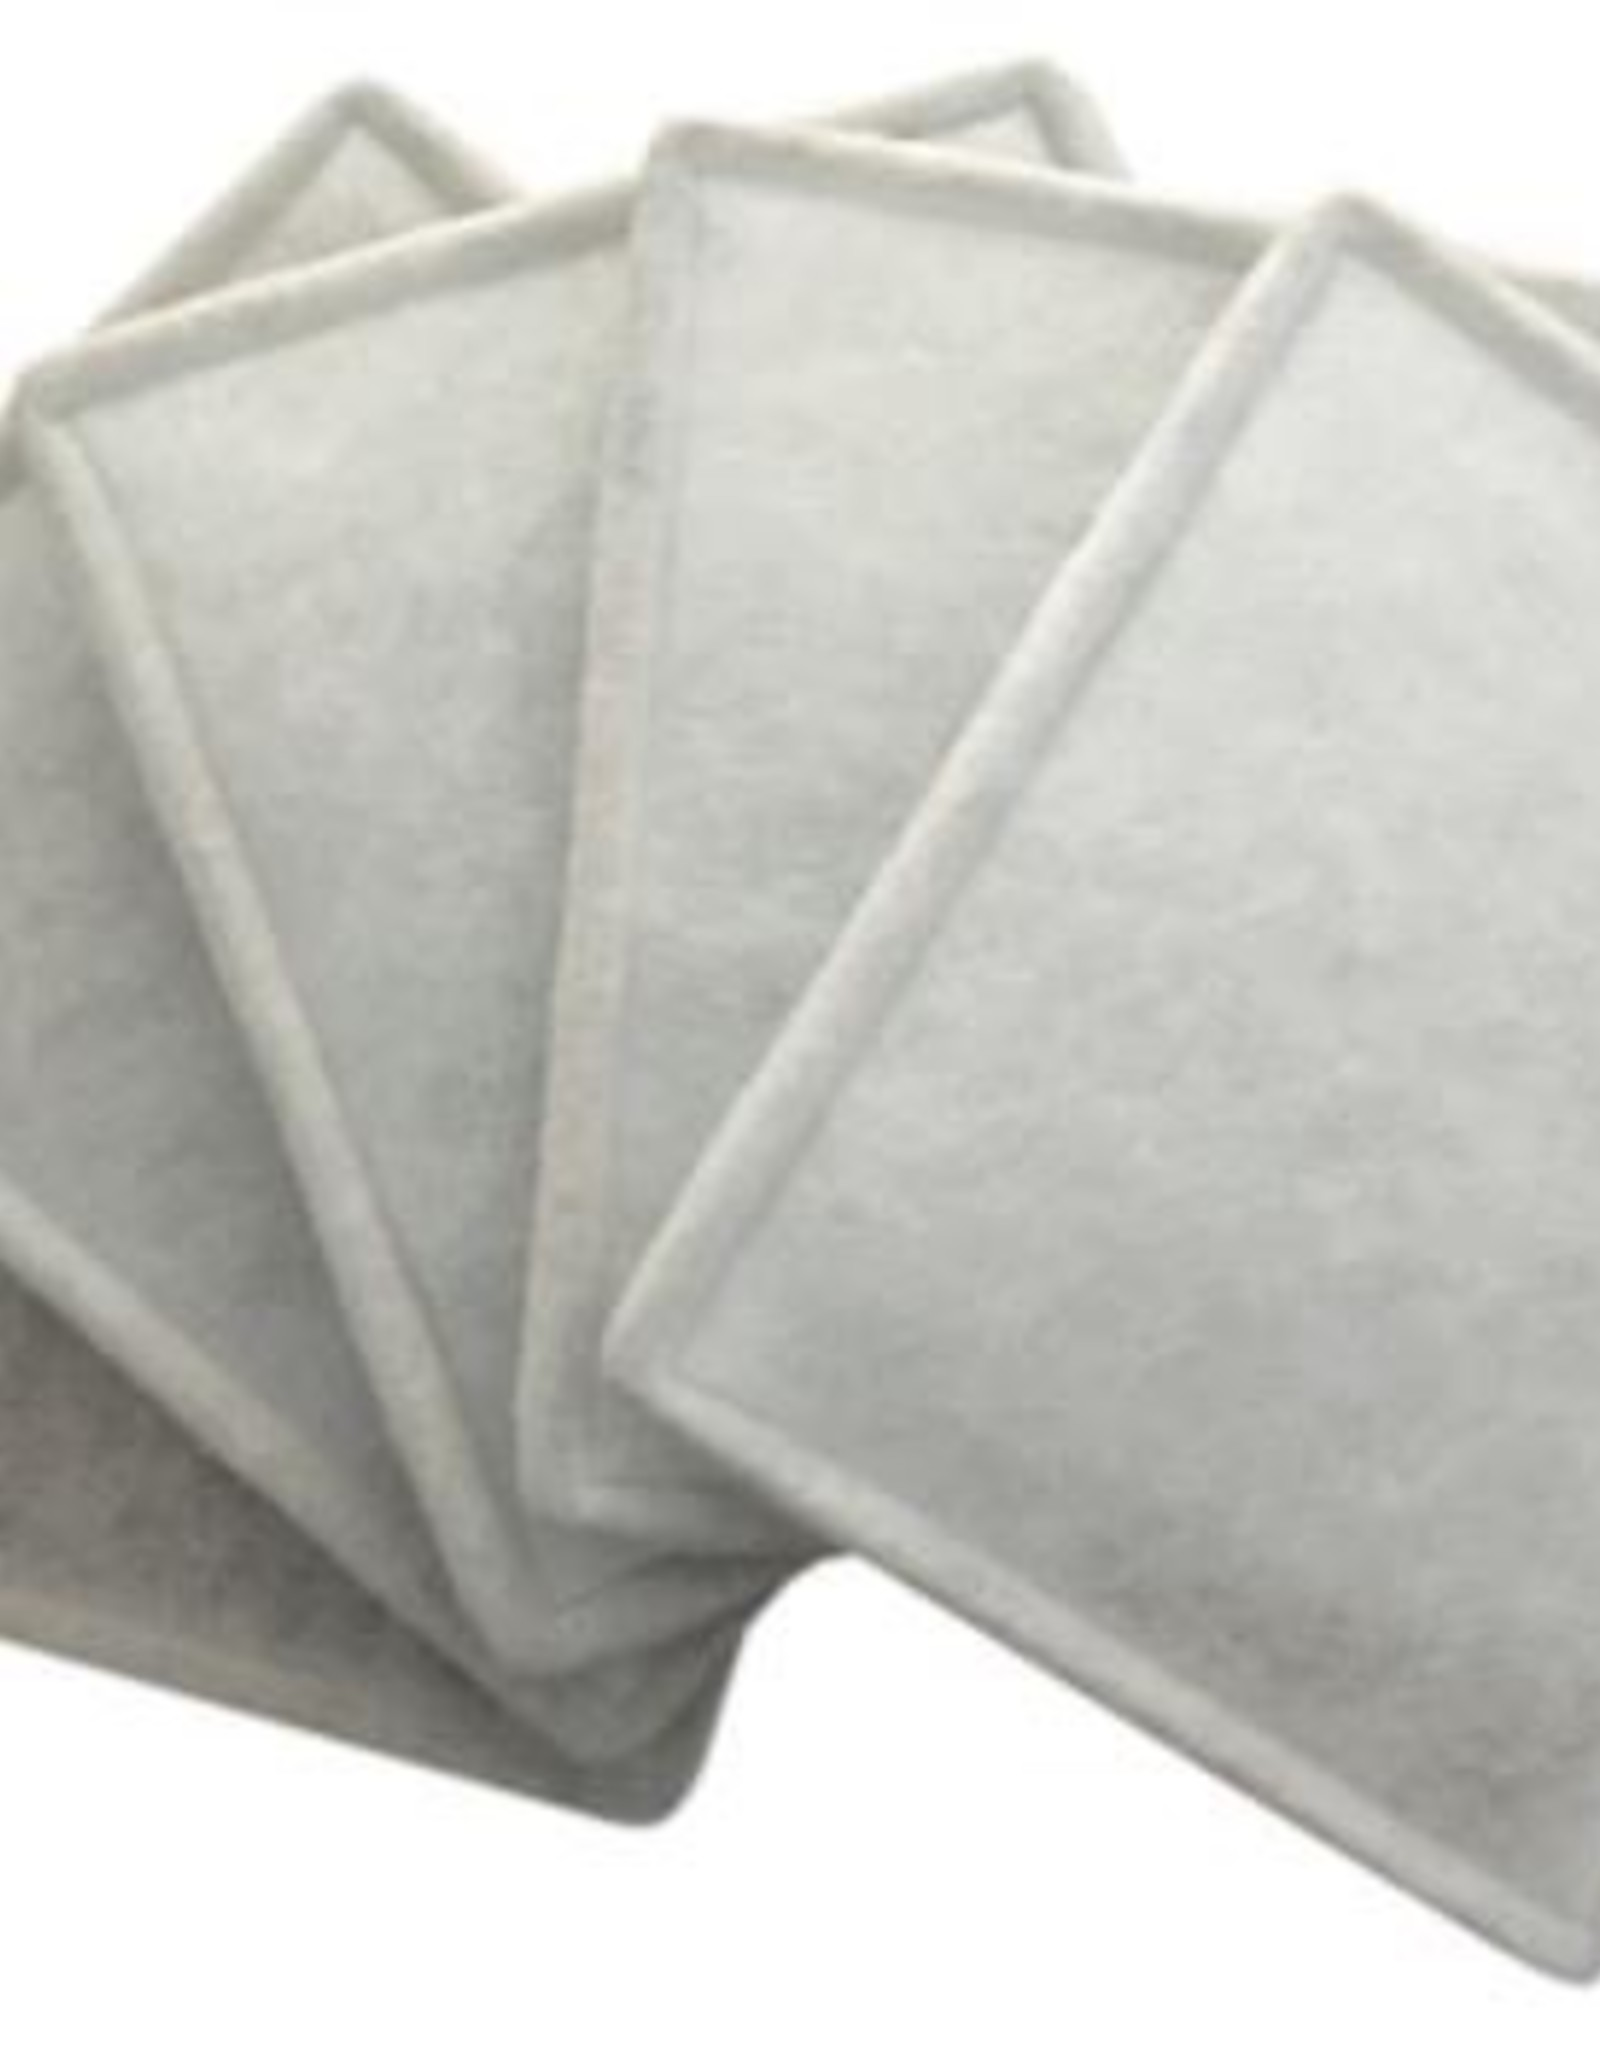 CAN FAN Can-Fan Replacement Intake Filter 8 in - 10  pack of 5